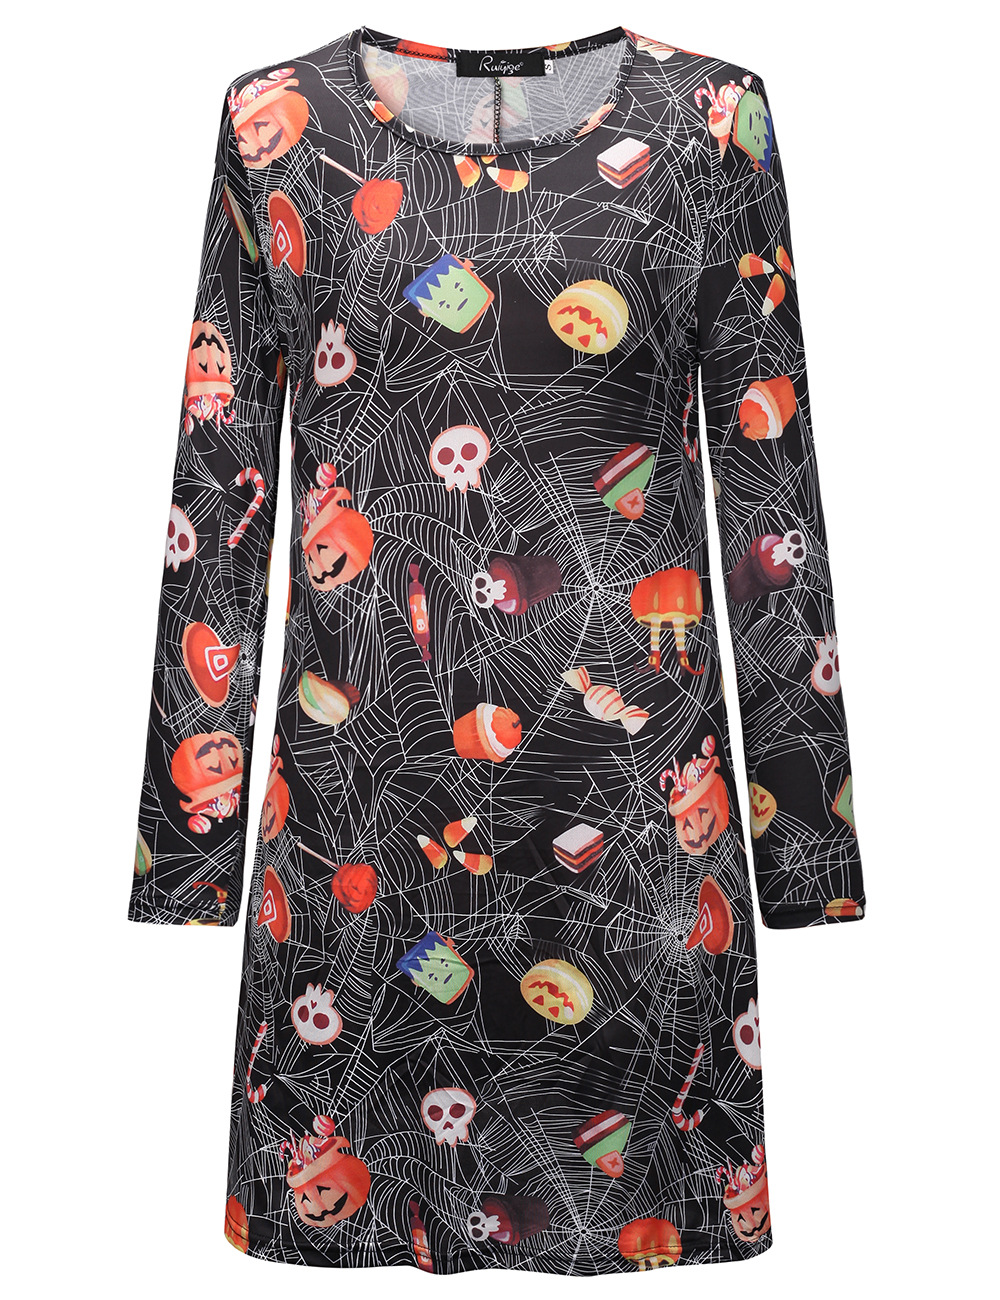 Women Vintage Christmas Dress Ladies Printed Winter Casual Midi Dress O Neck Christmas Party Dresses